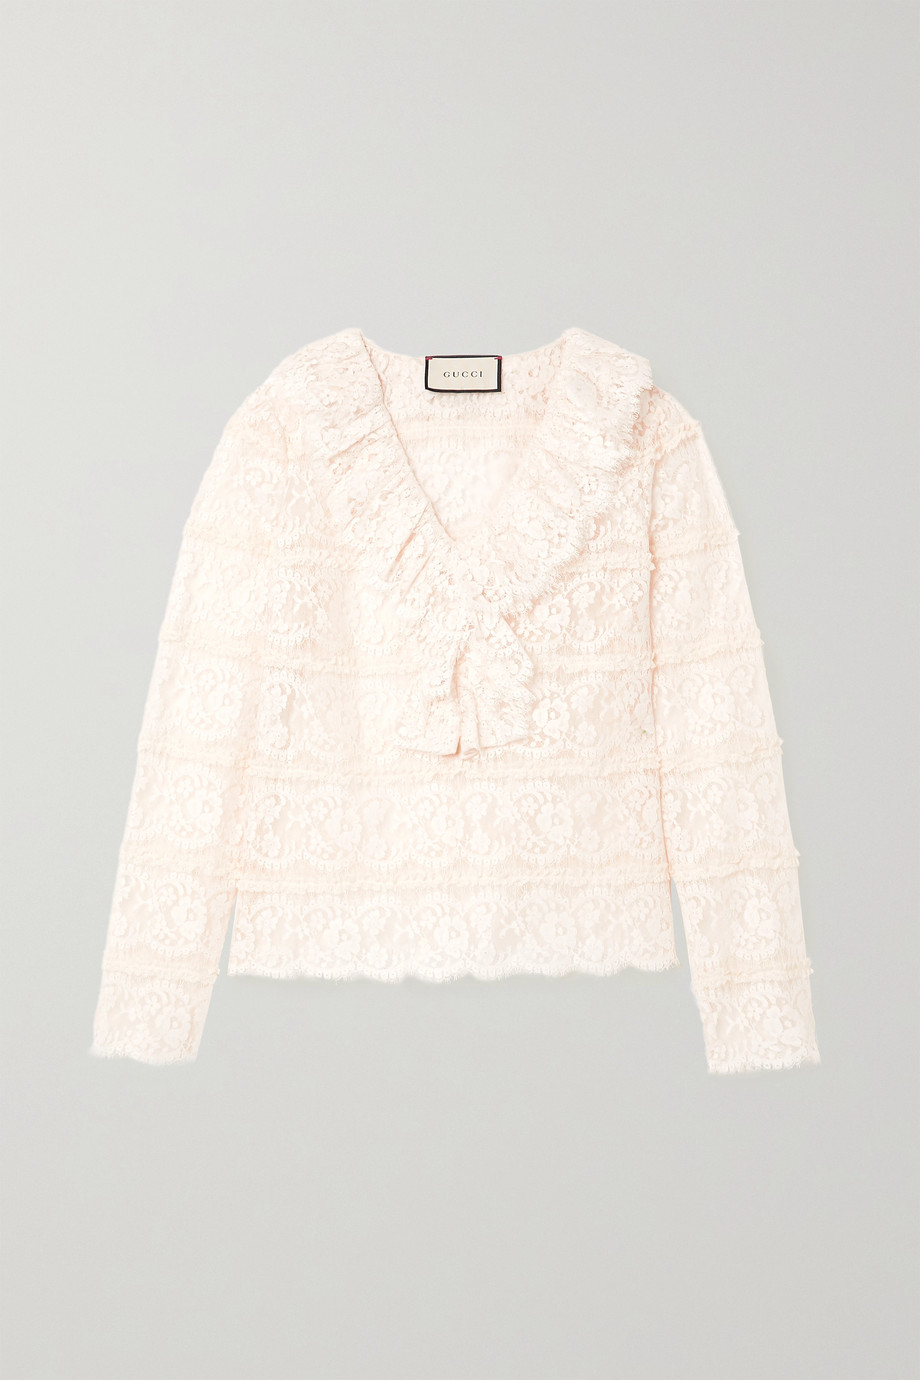 GUCCI Ruffled cotton-blend lace blouse